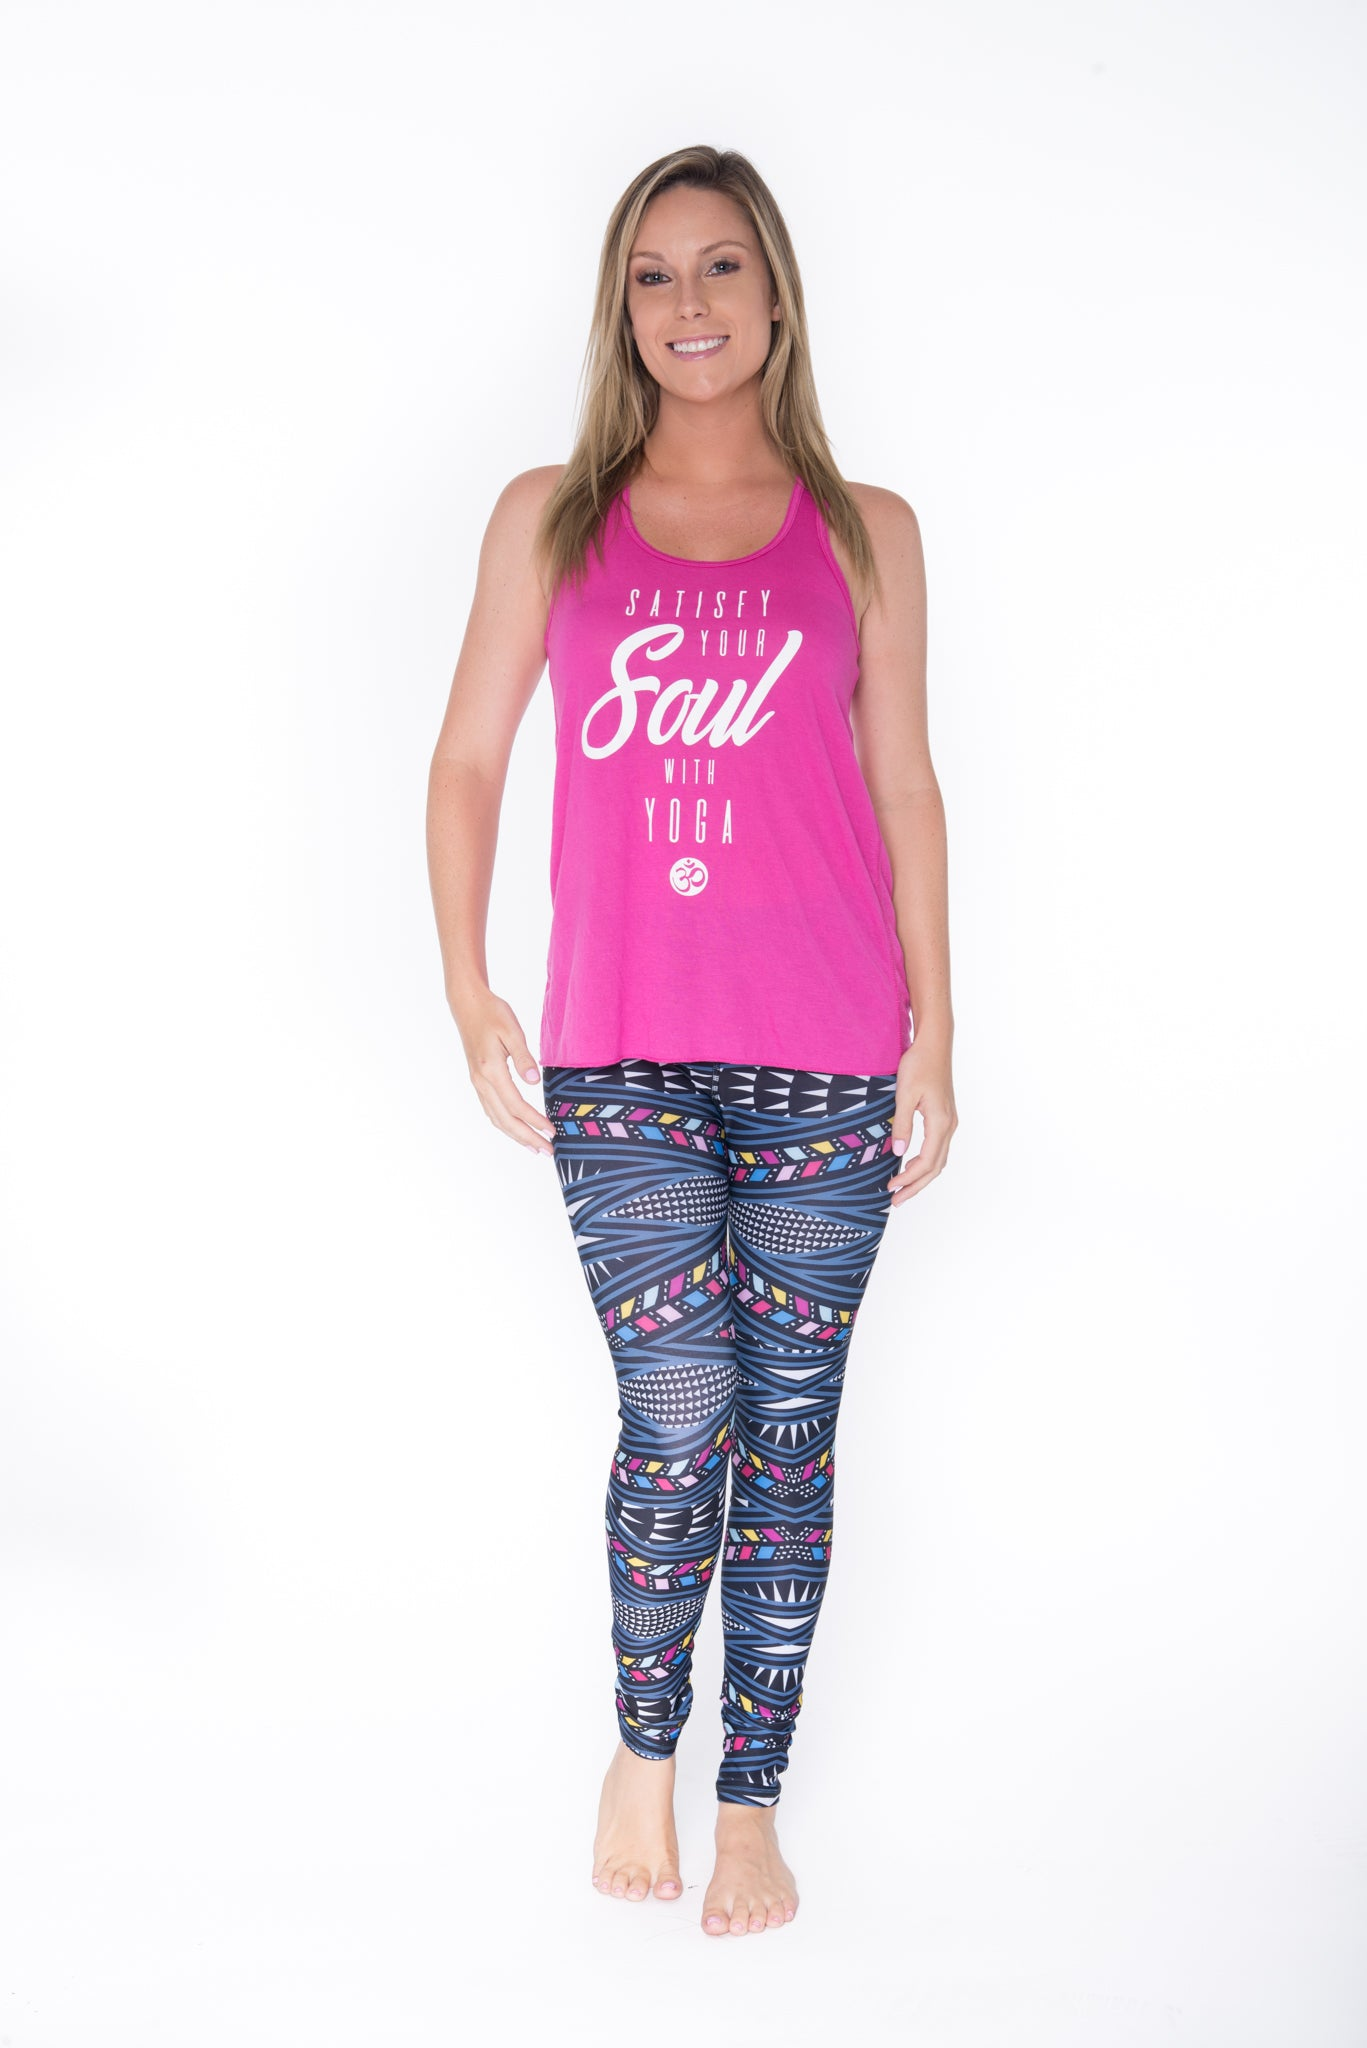 #Satisfying Your Soul Sheer Racer Back Tank Top - Pink